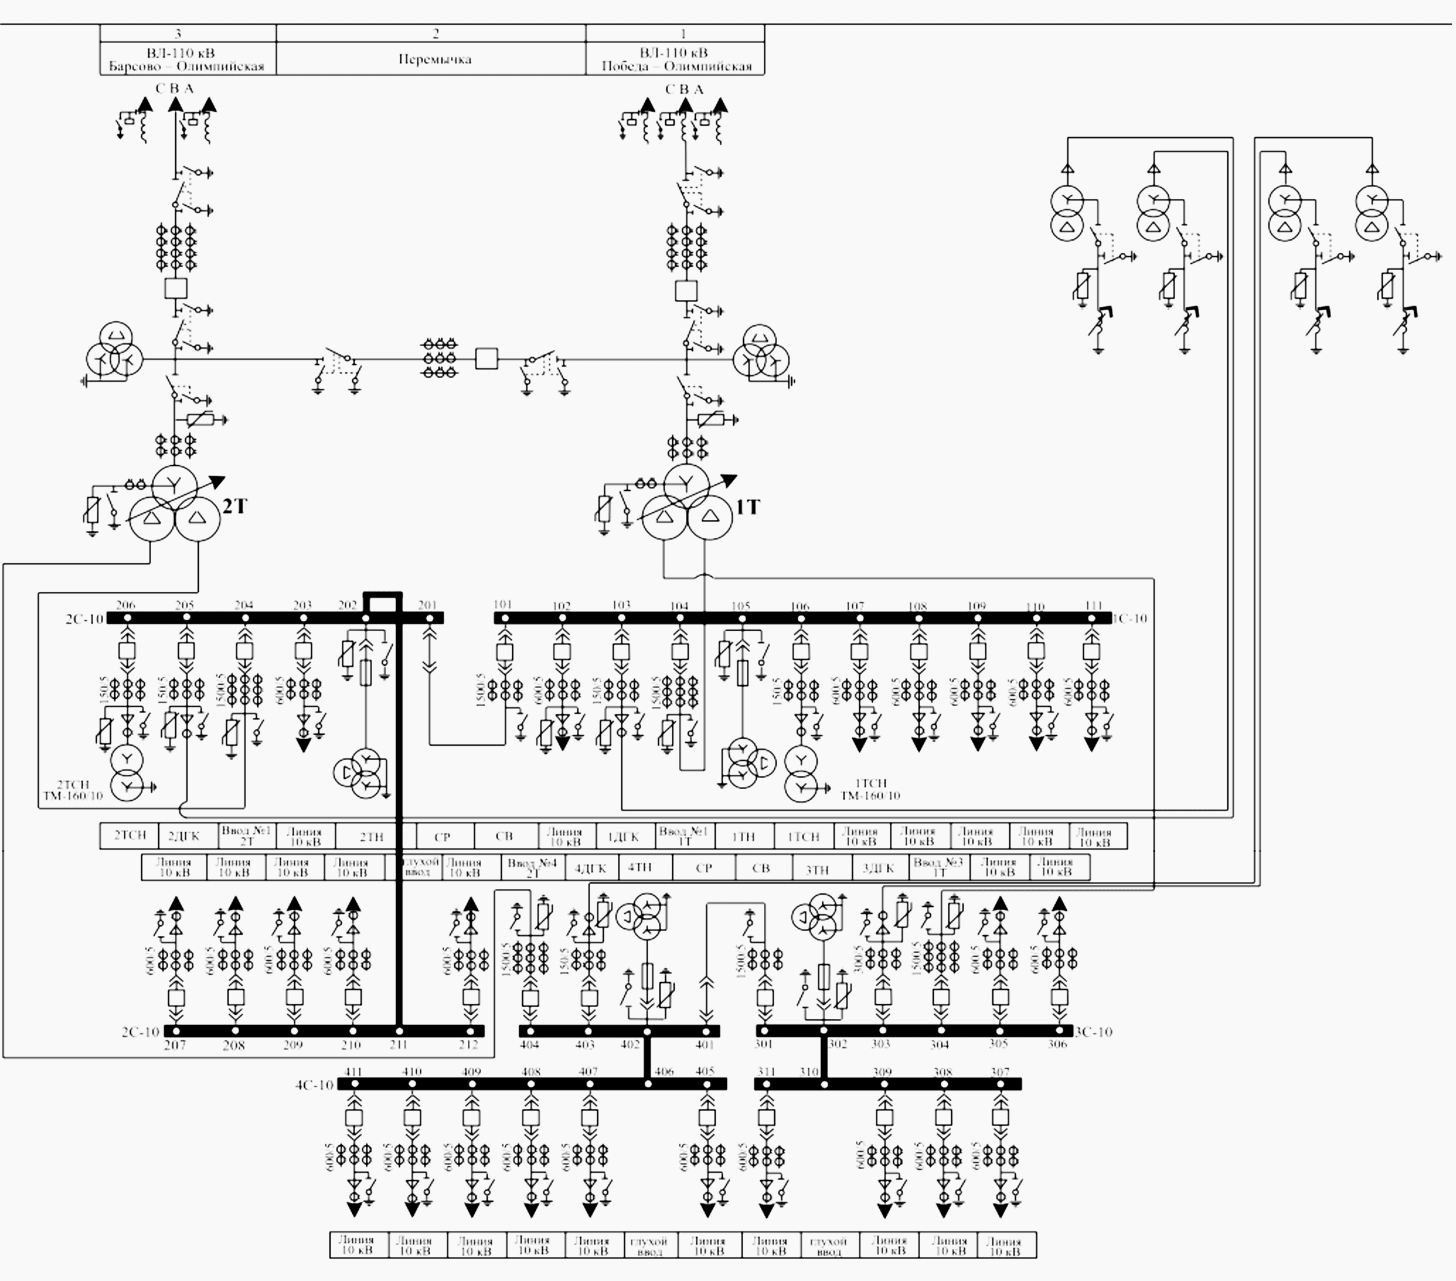 electrical one line diagram software 2001 gmc sierra 1500 radio wiring 110 10 kv substation with centralized protection